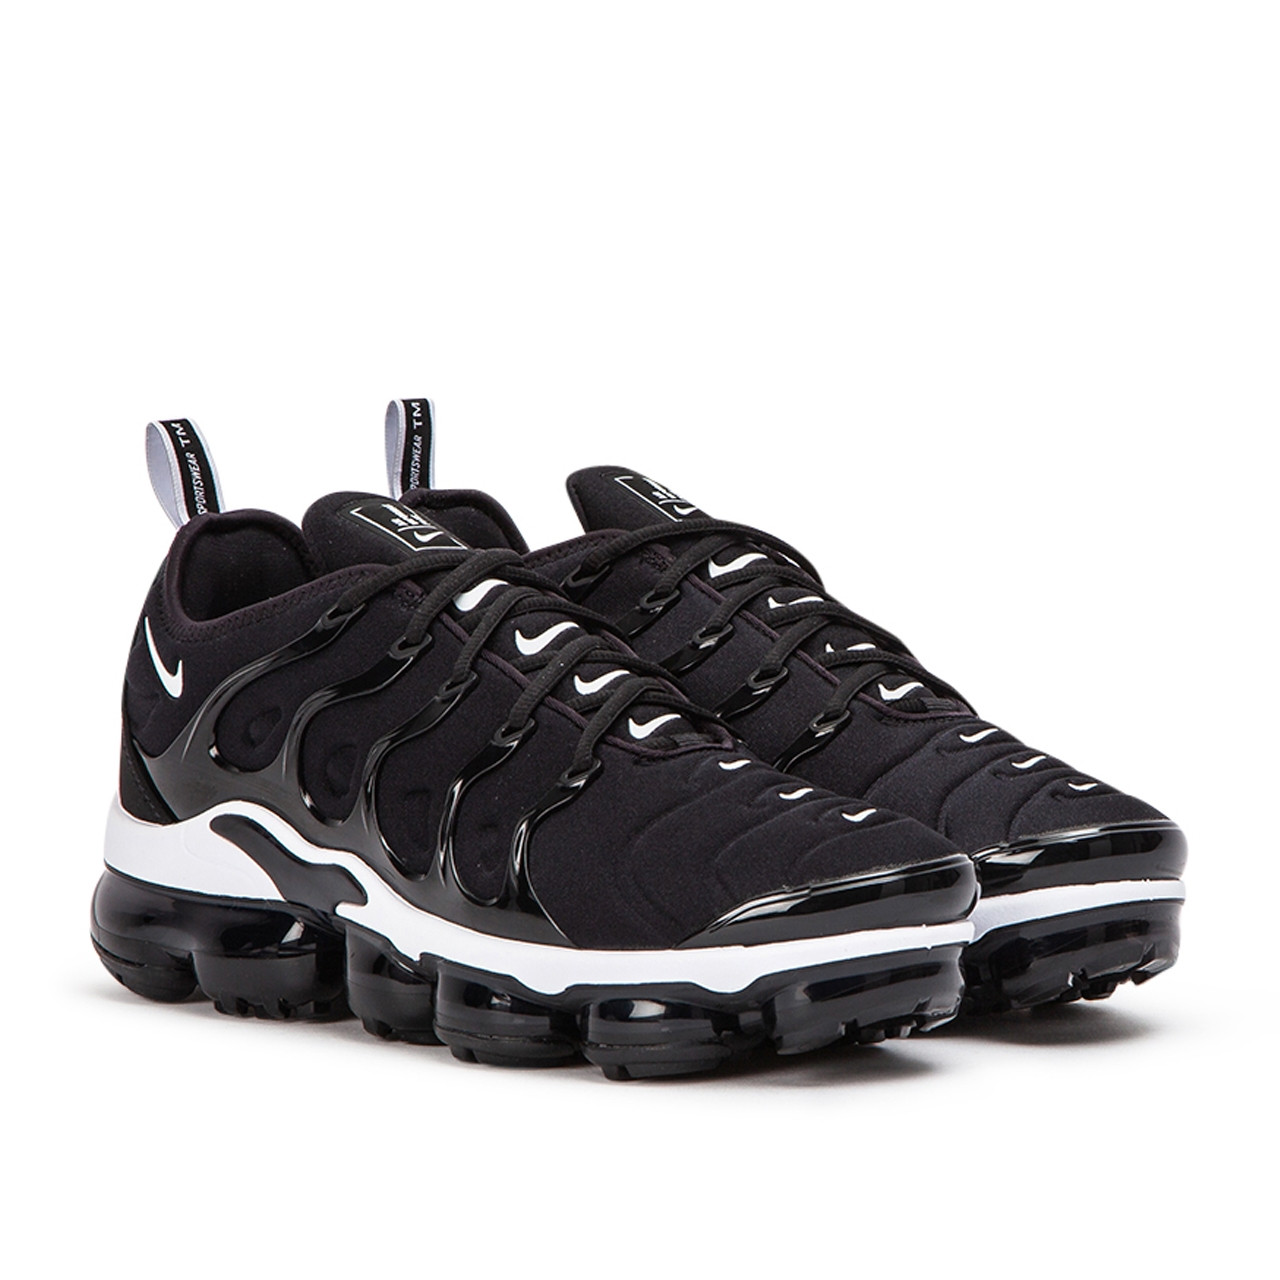 76969ec731 Vapormax Plus Black Zalando | Air Vapormax 2019 Neutral Running ...